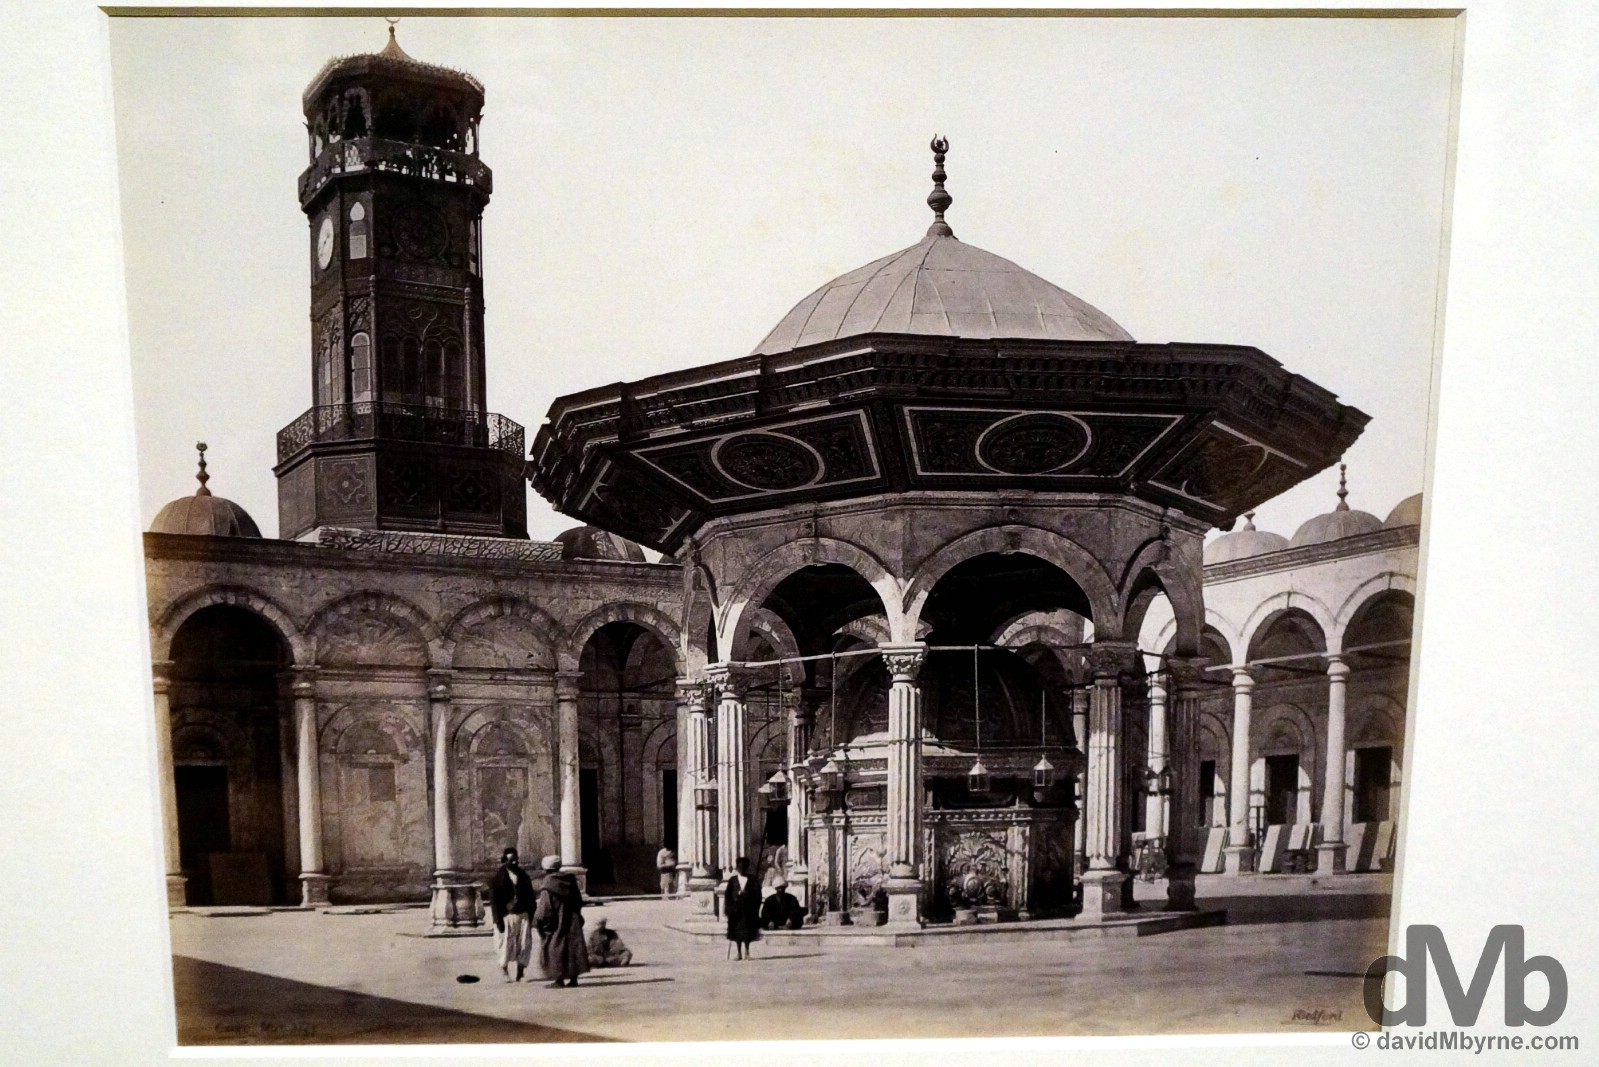 A Francis Bedford (1815-1894) capture of the fountain in the courtyard of the Mosque of Muhammad Ali in the Saladin Citadel in Cairo, Egypt. Captured on March 3, 1862, & on display as part of the Cairo to Constantinople Exhibit in the Queen's Gallery of Buckingham Palace, London, England. December 14, 2014.